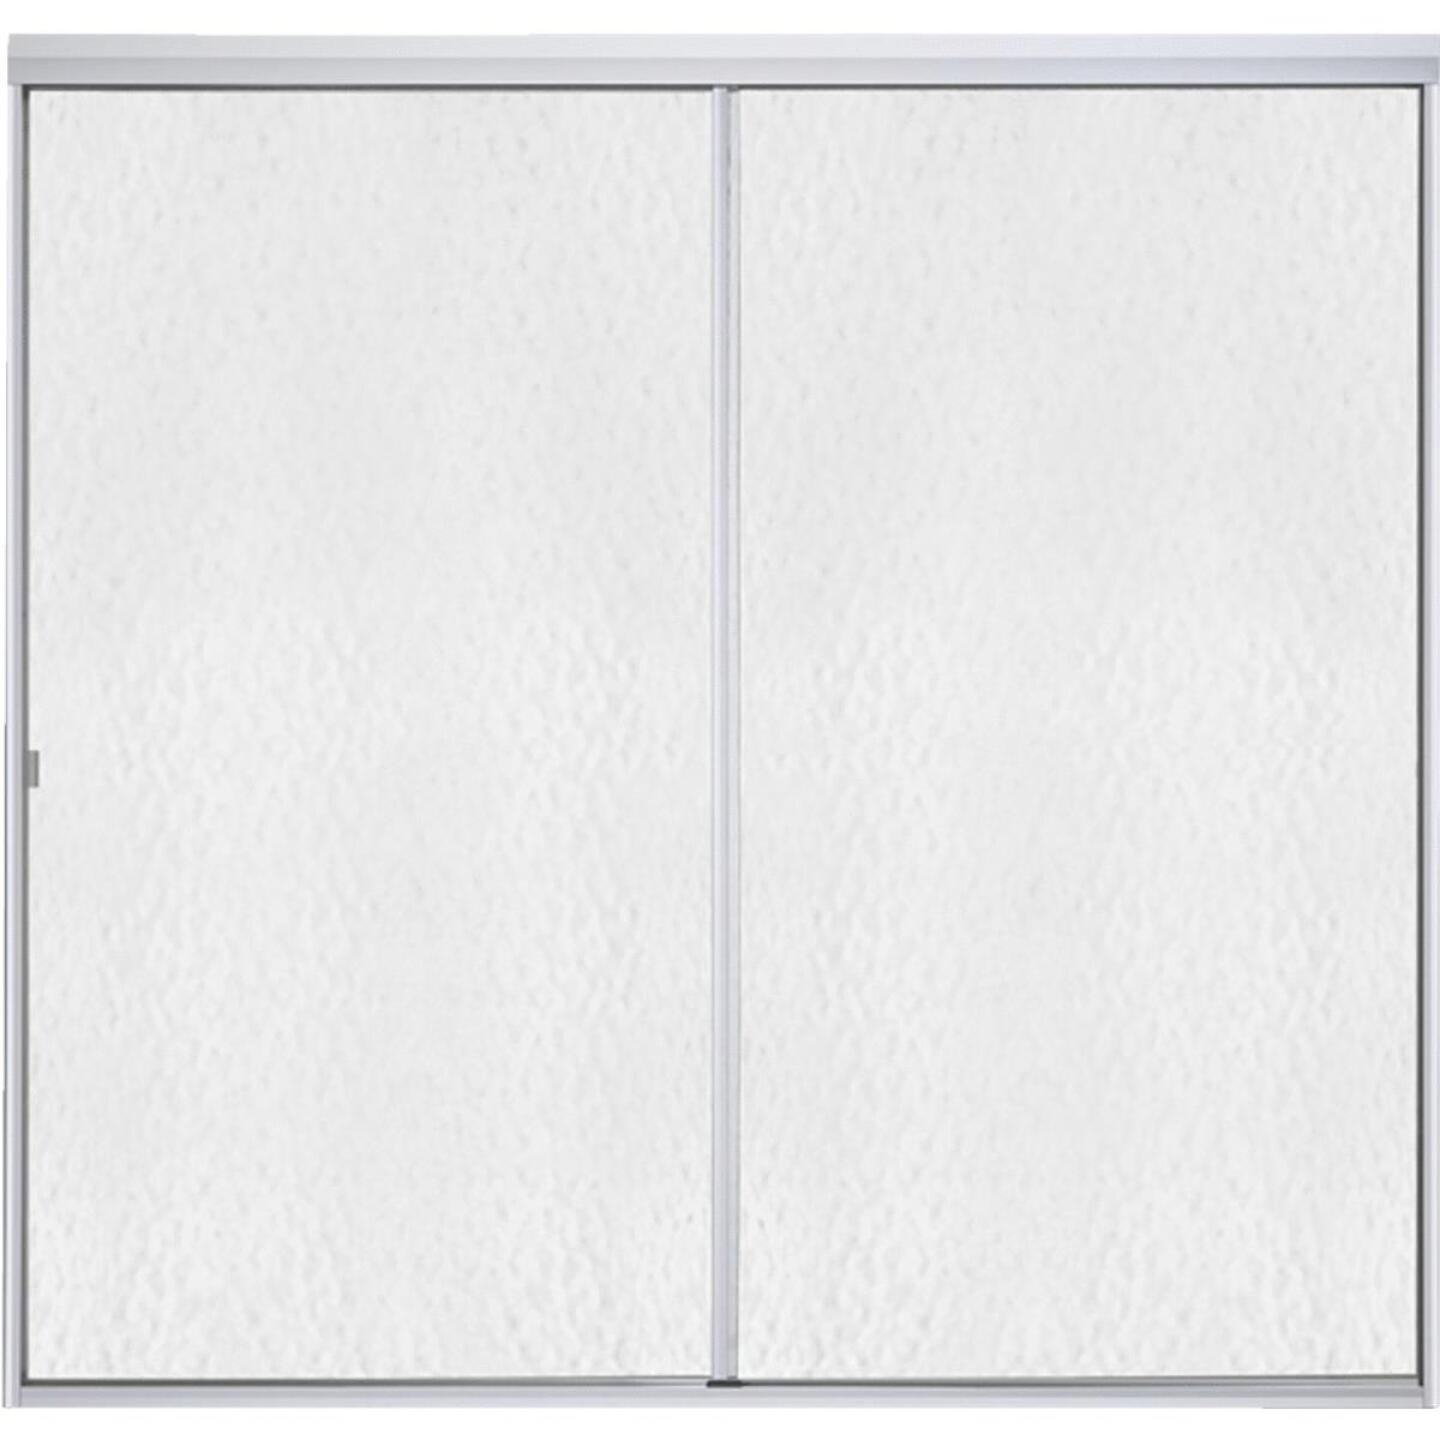 Sterling Standard 59 In. W. x 56-1/16 In. H. Chrome Hammered Glass Sliding Tub Door Image 1